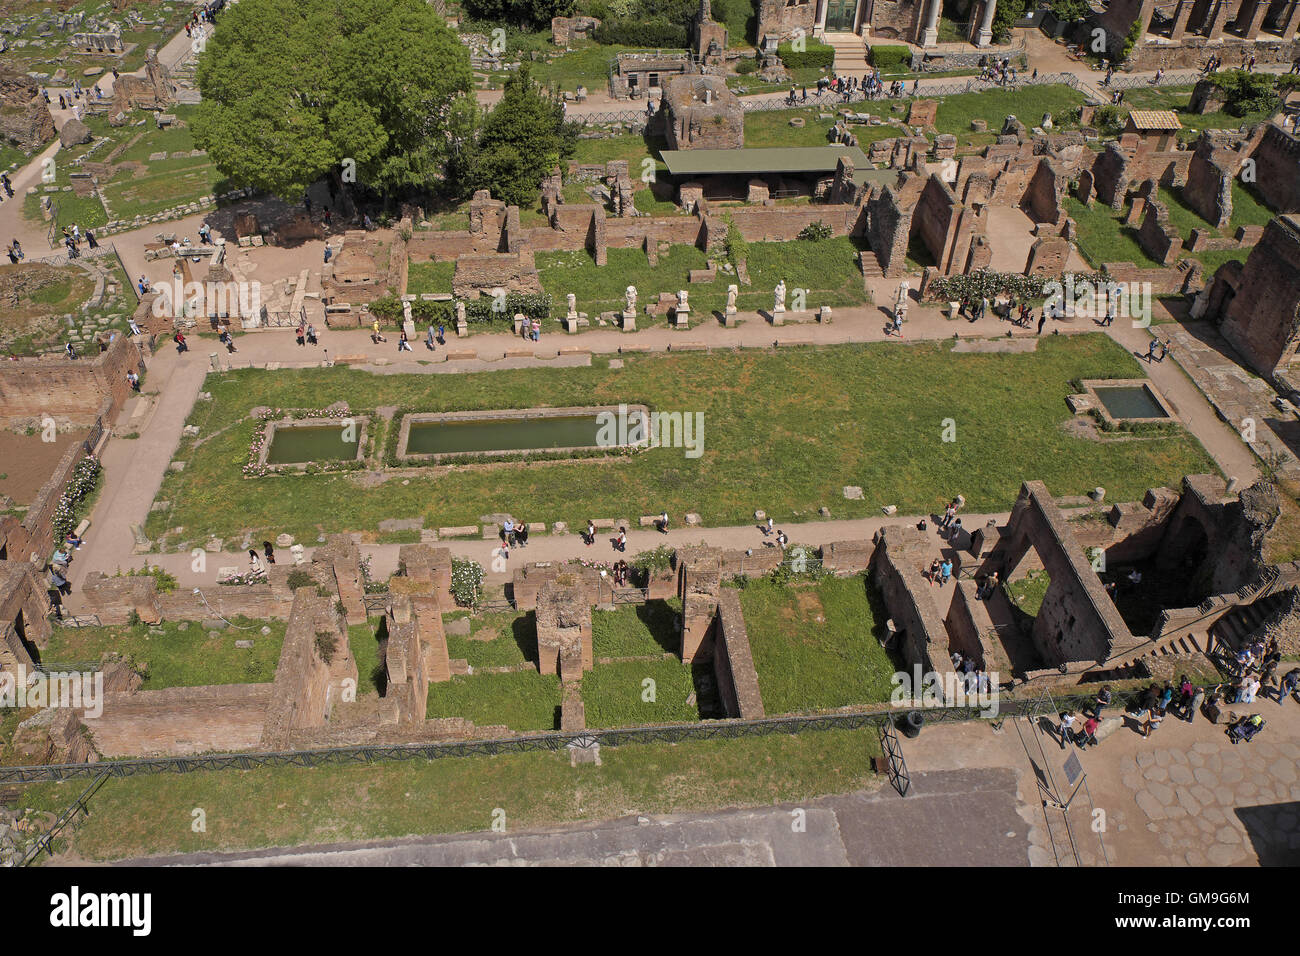 Birdseye view of what used to be a garden area, Forum area, Rome, Italy. - Stock Image